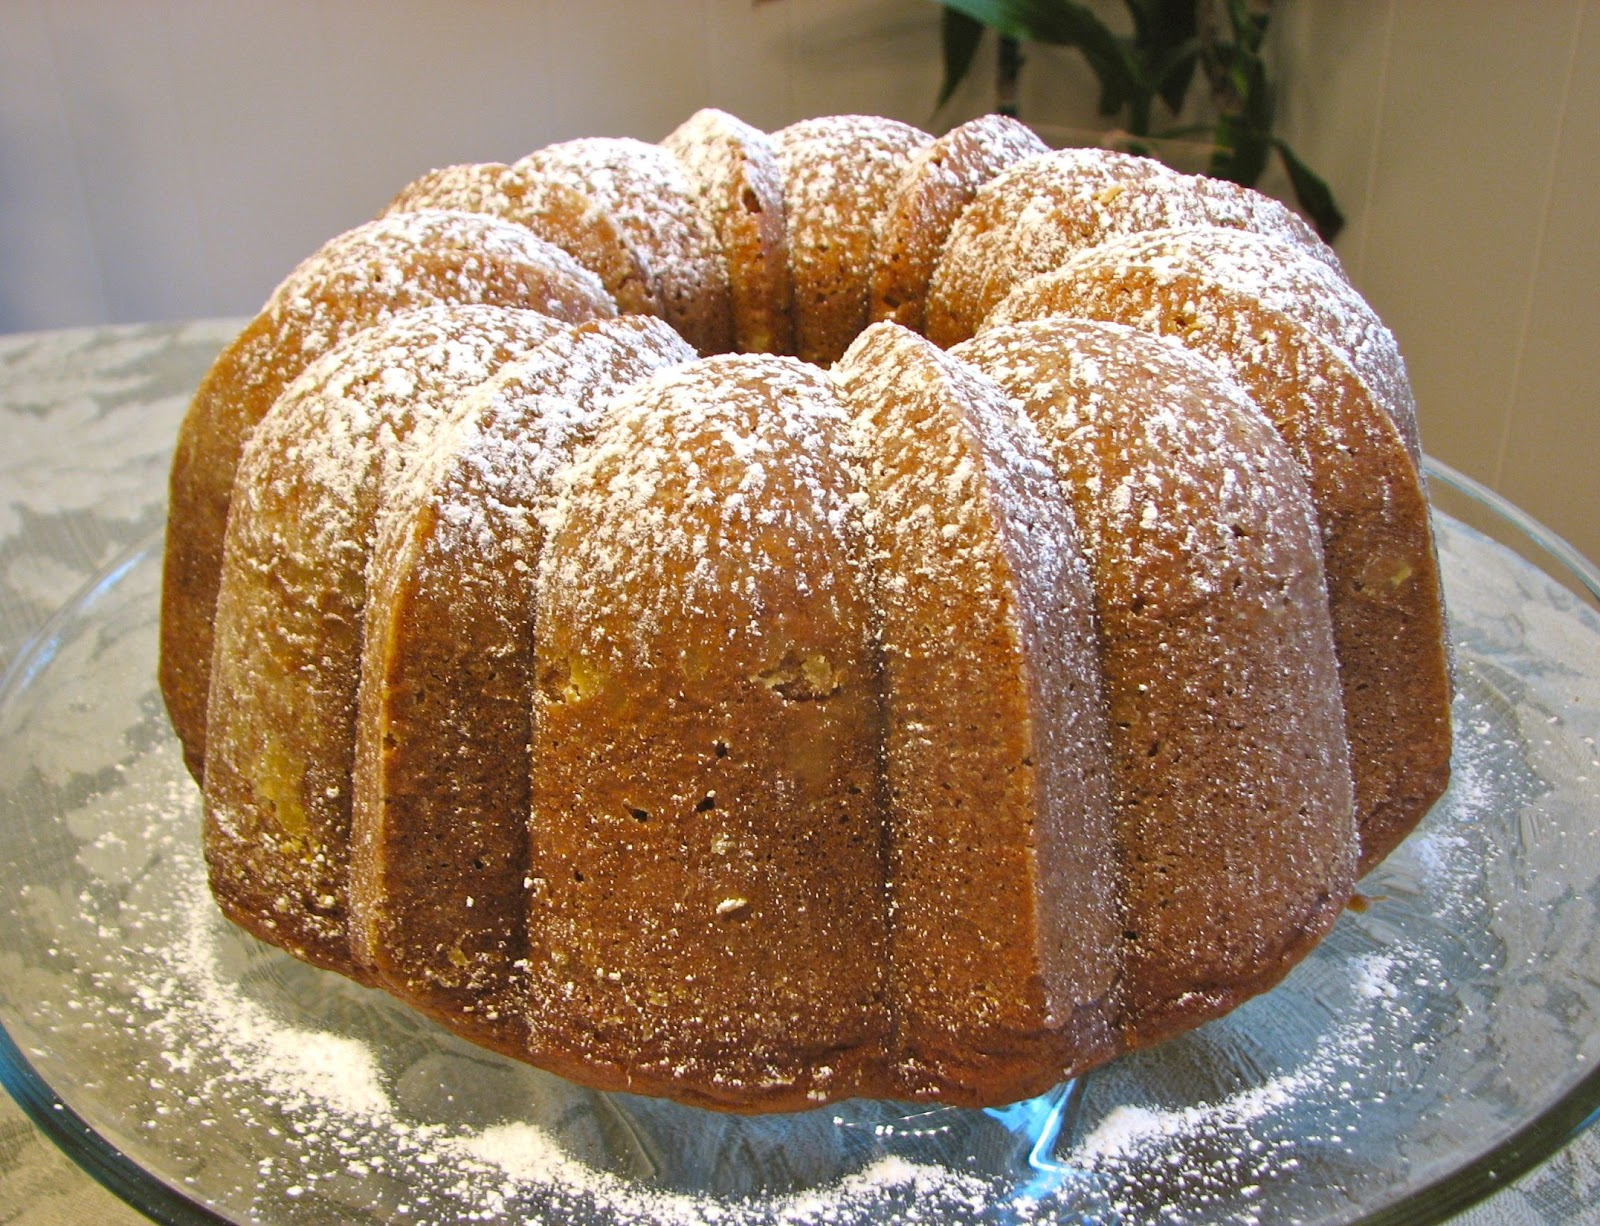 ... bundt cake pistachio nut bundt cake sherry bundt cake maple bundt cake